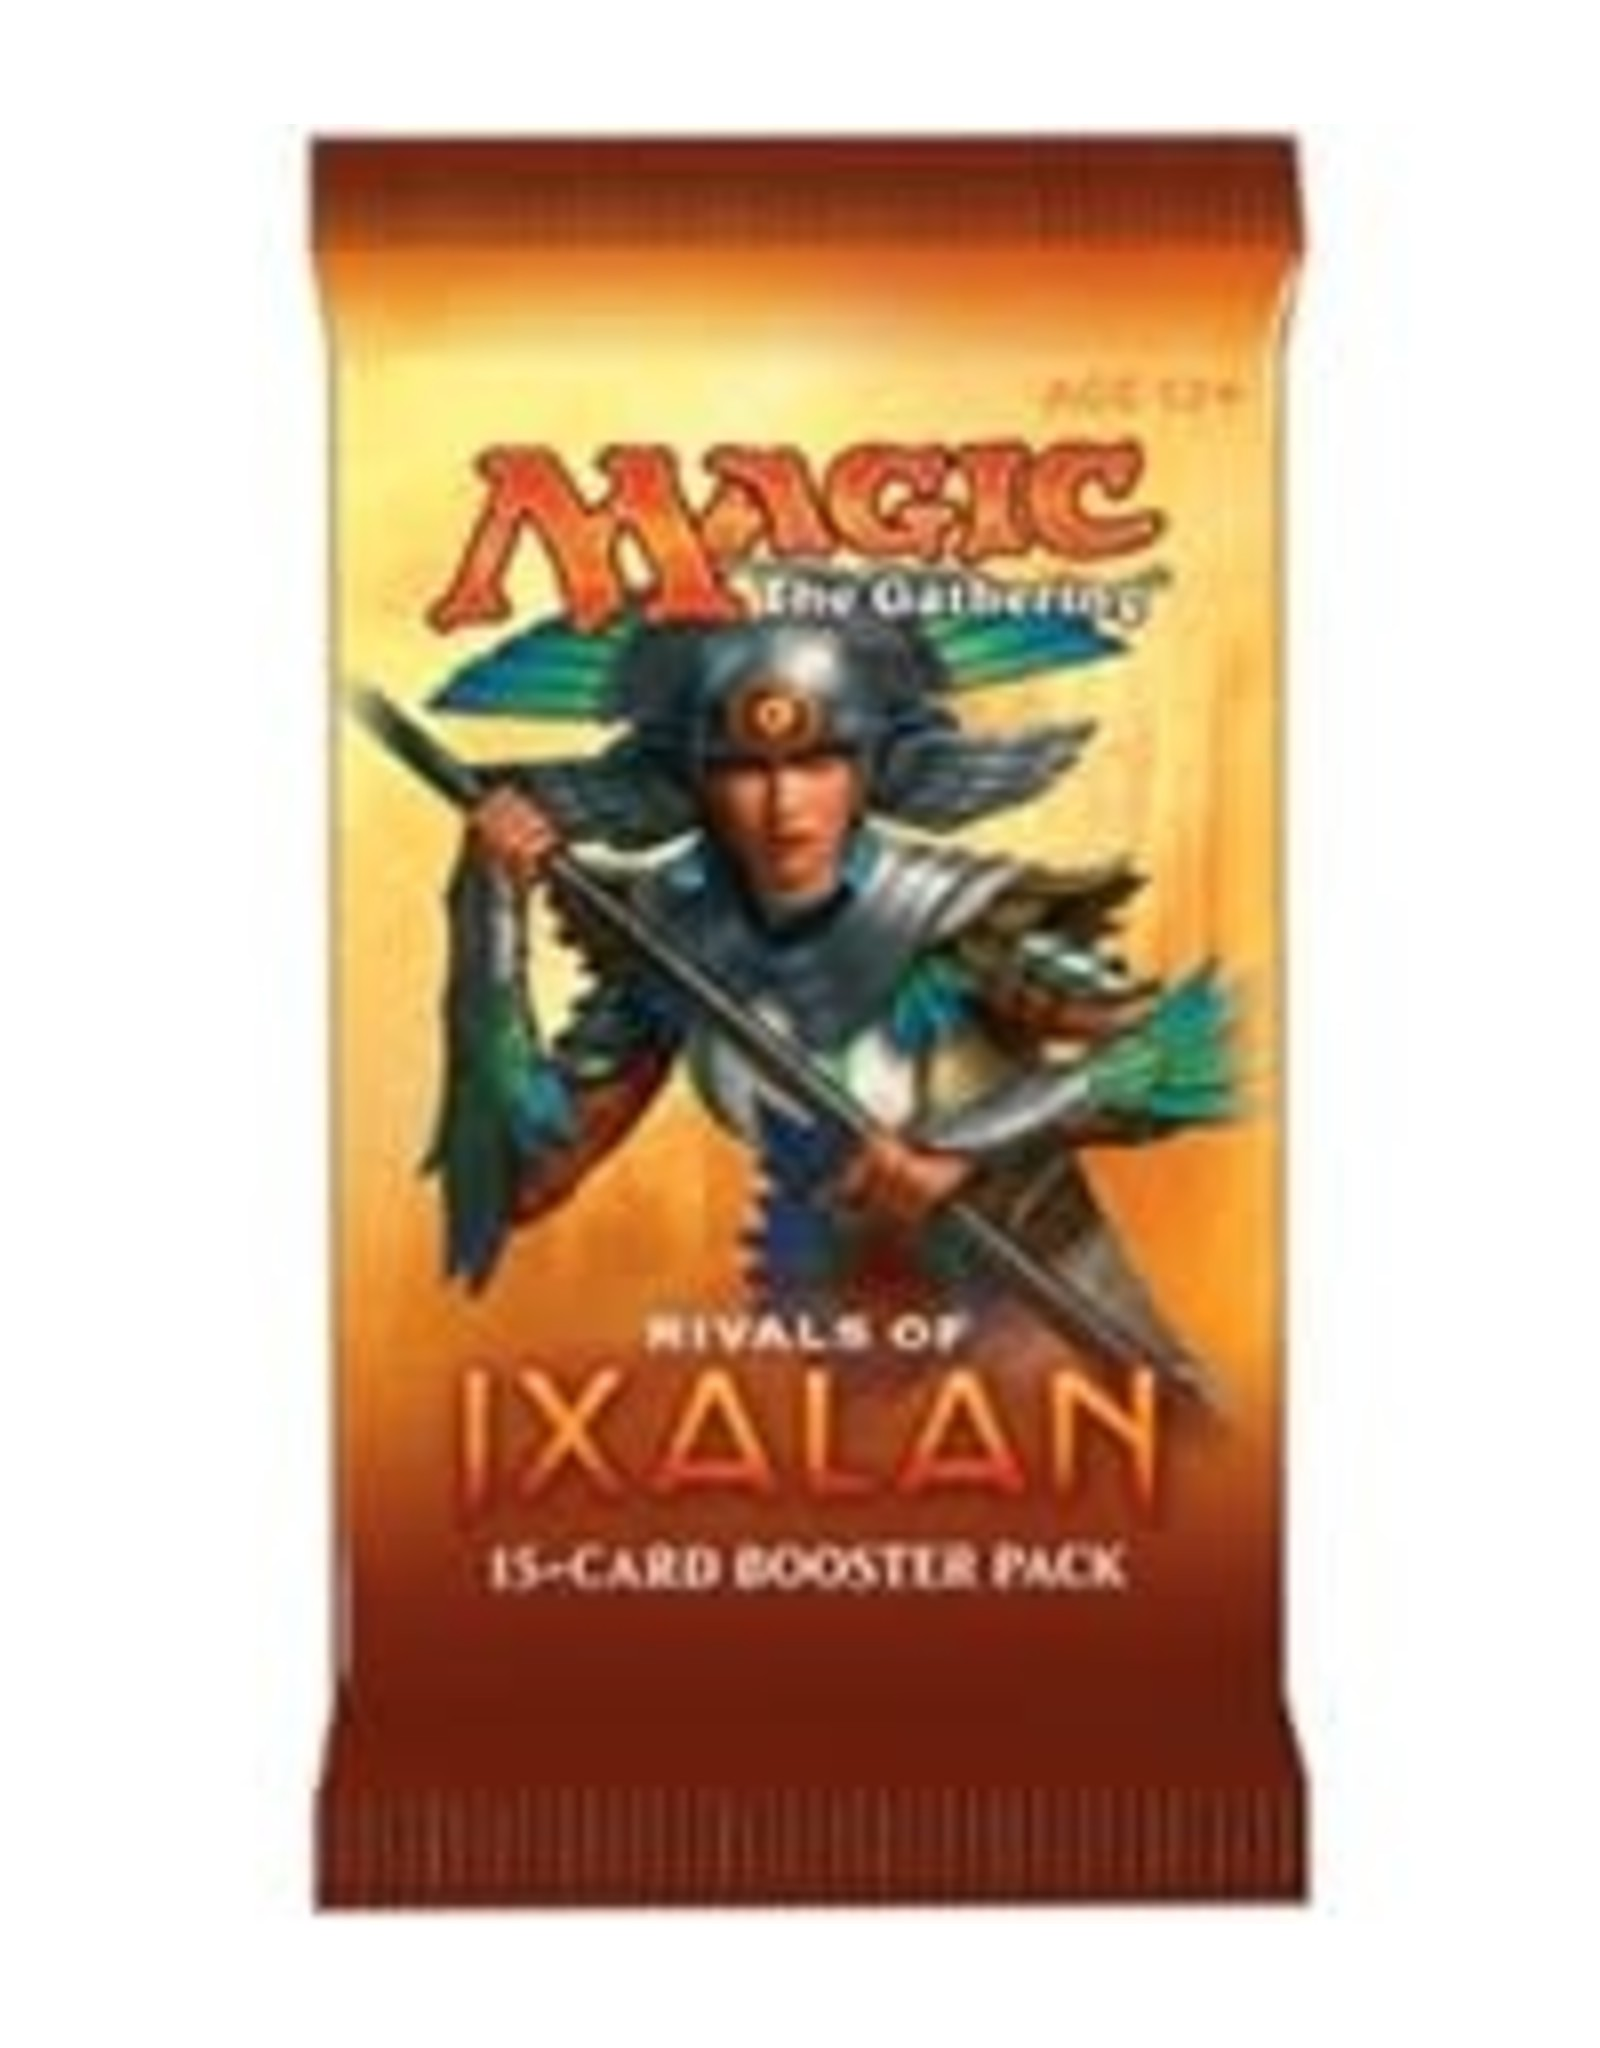 Magic: The Gathering Rivals Of Ixalan - Booster Pack